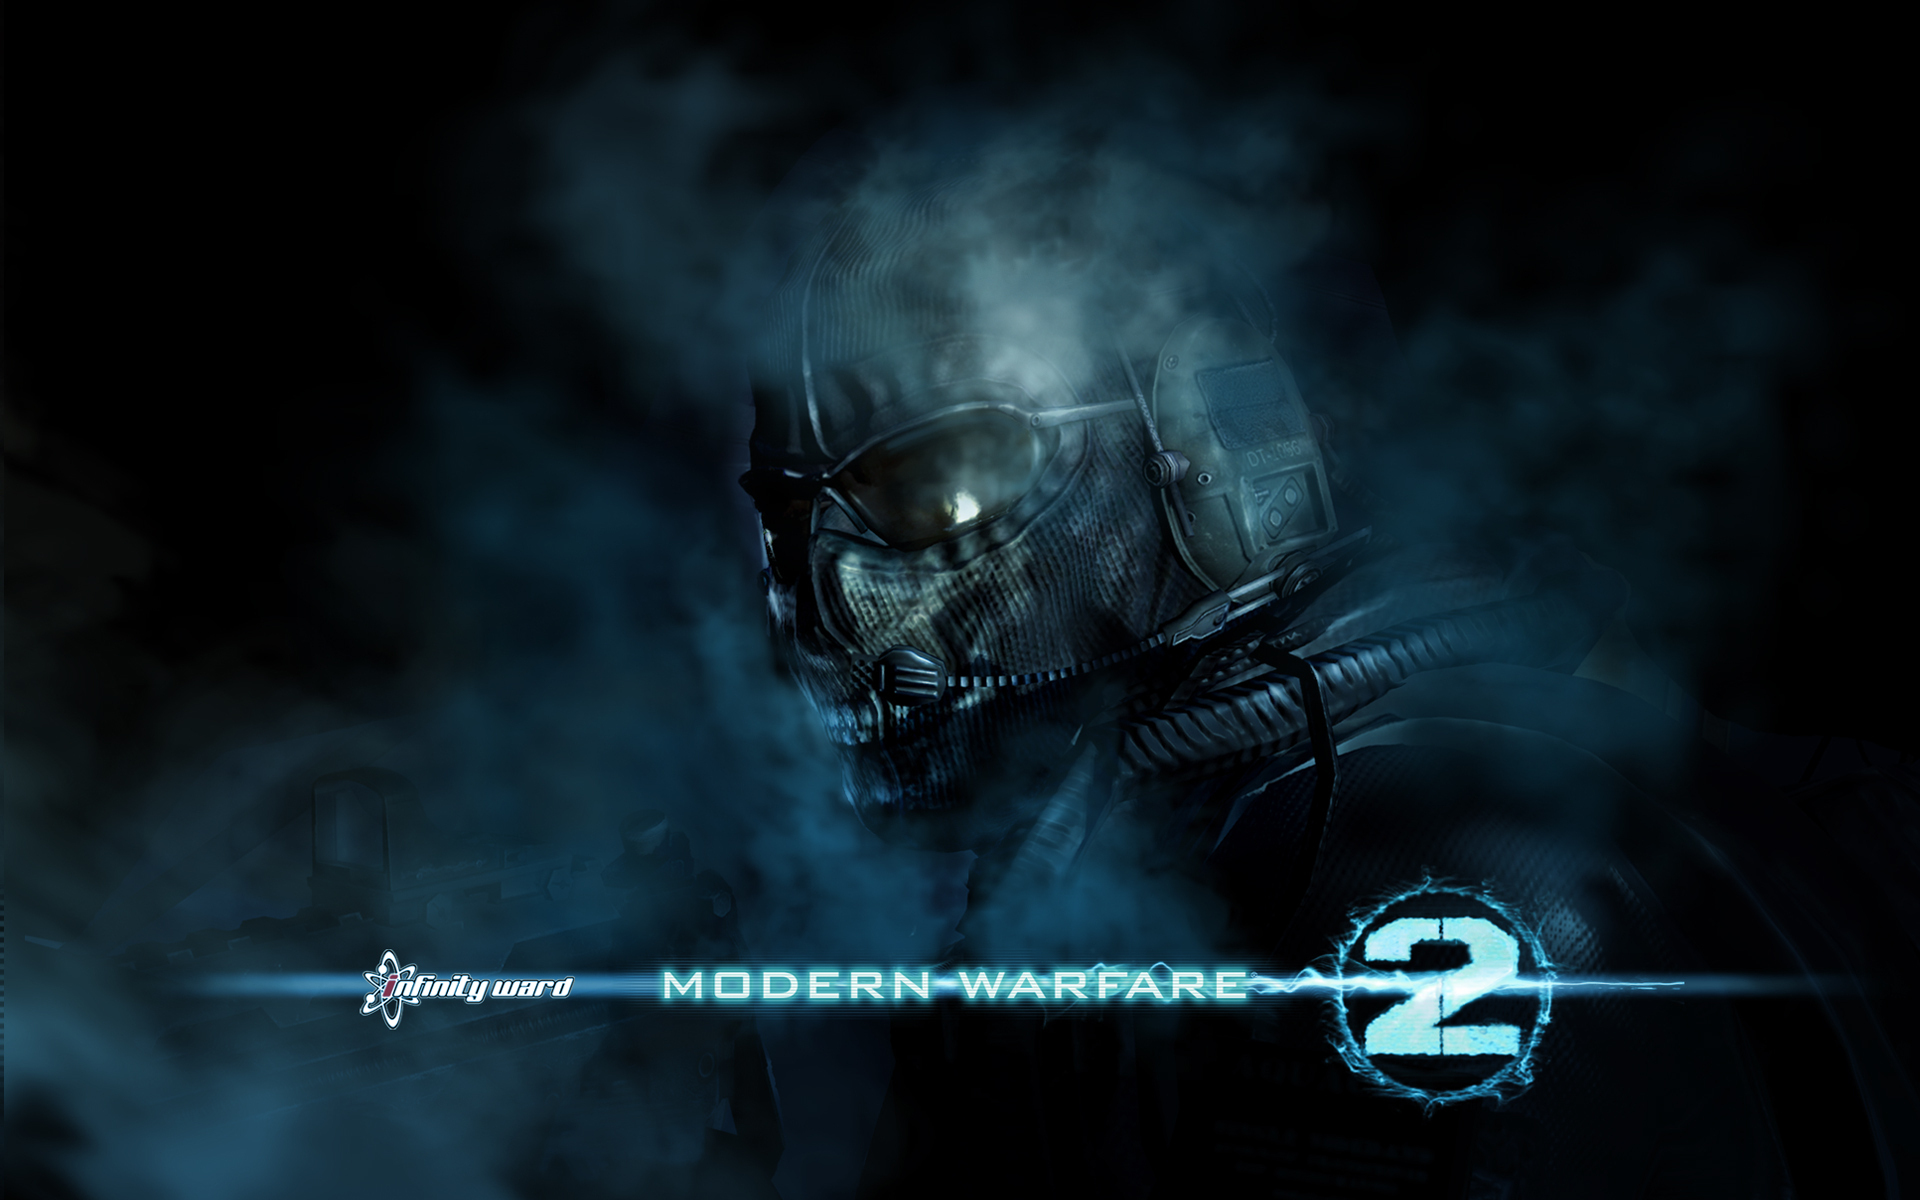 modern warfare 2 images mw2 hd wallpaper and background photos (9894945)